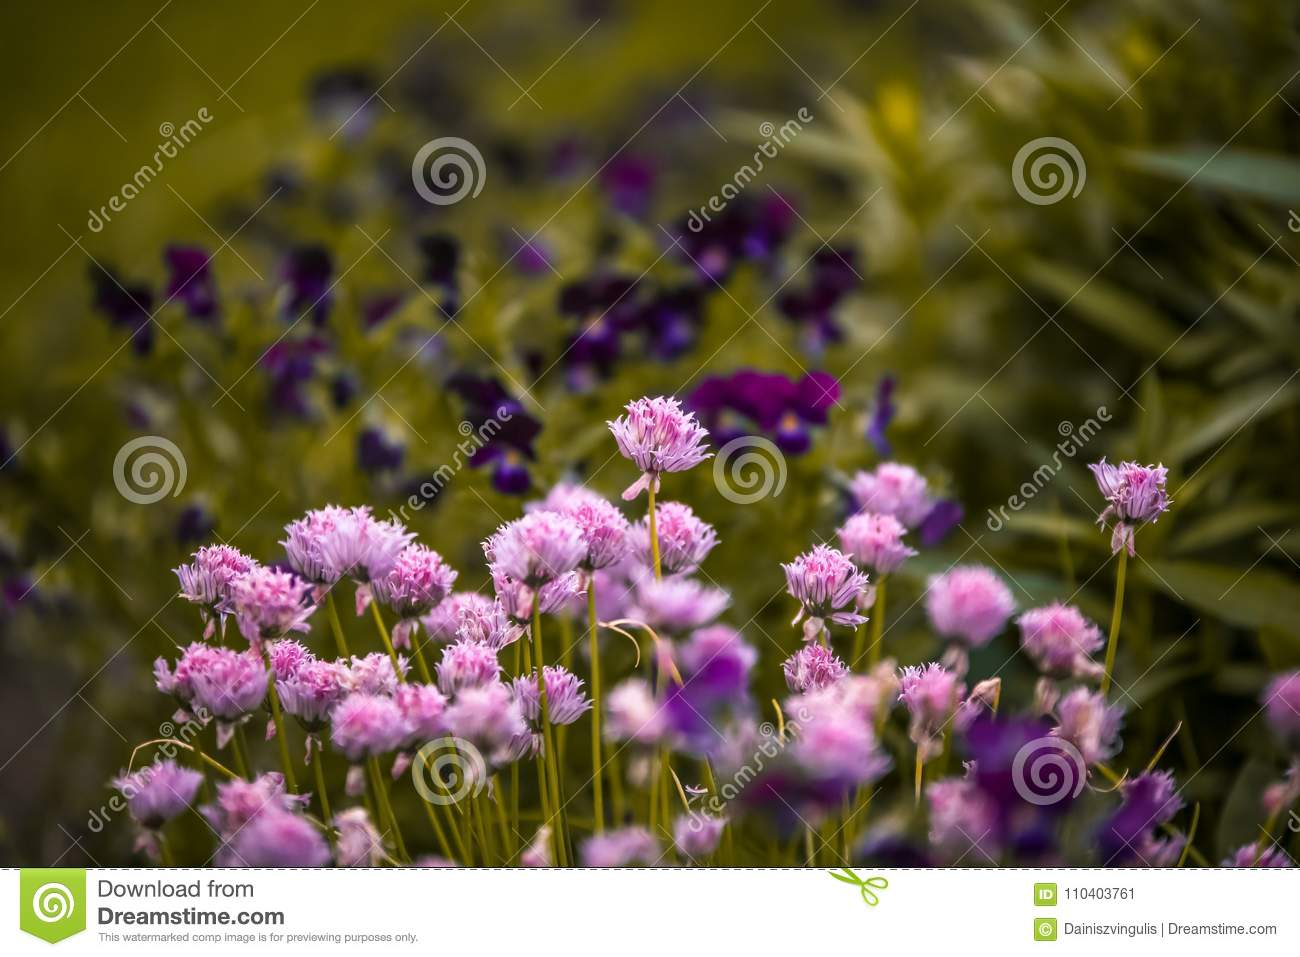 Summer Garden With Pink Flowers Stock Image - Image of blur, summer ...